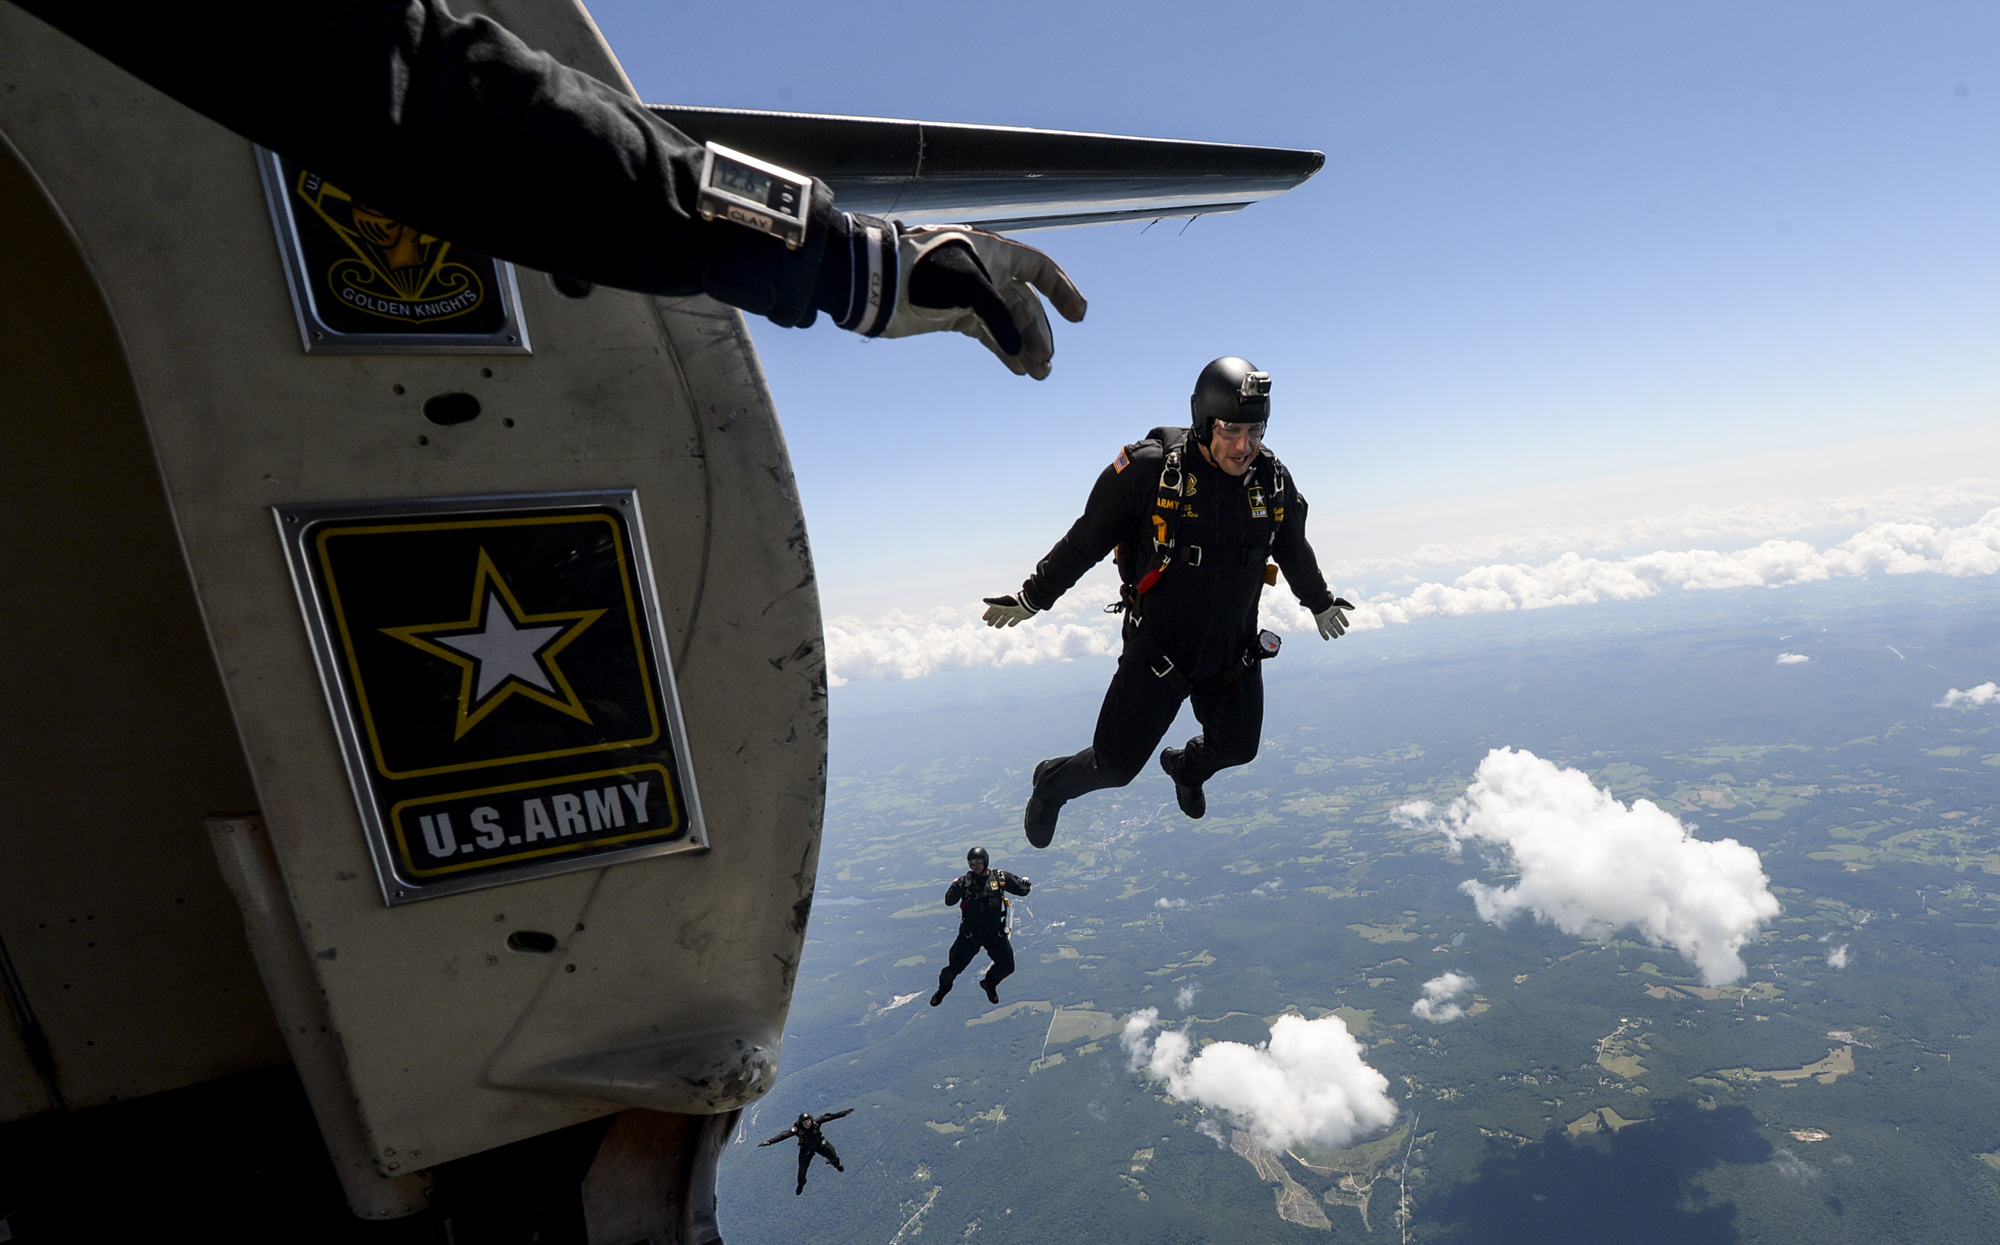 The United States Army Parachute Team, Golden Knights, jumps from 12,500 feet up during the Westmoreland Airshow at Arnold Palmer Regional Airport in Latrobe on Sunday, July 29, 2018.